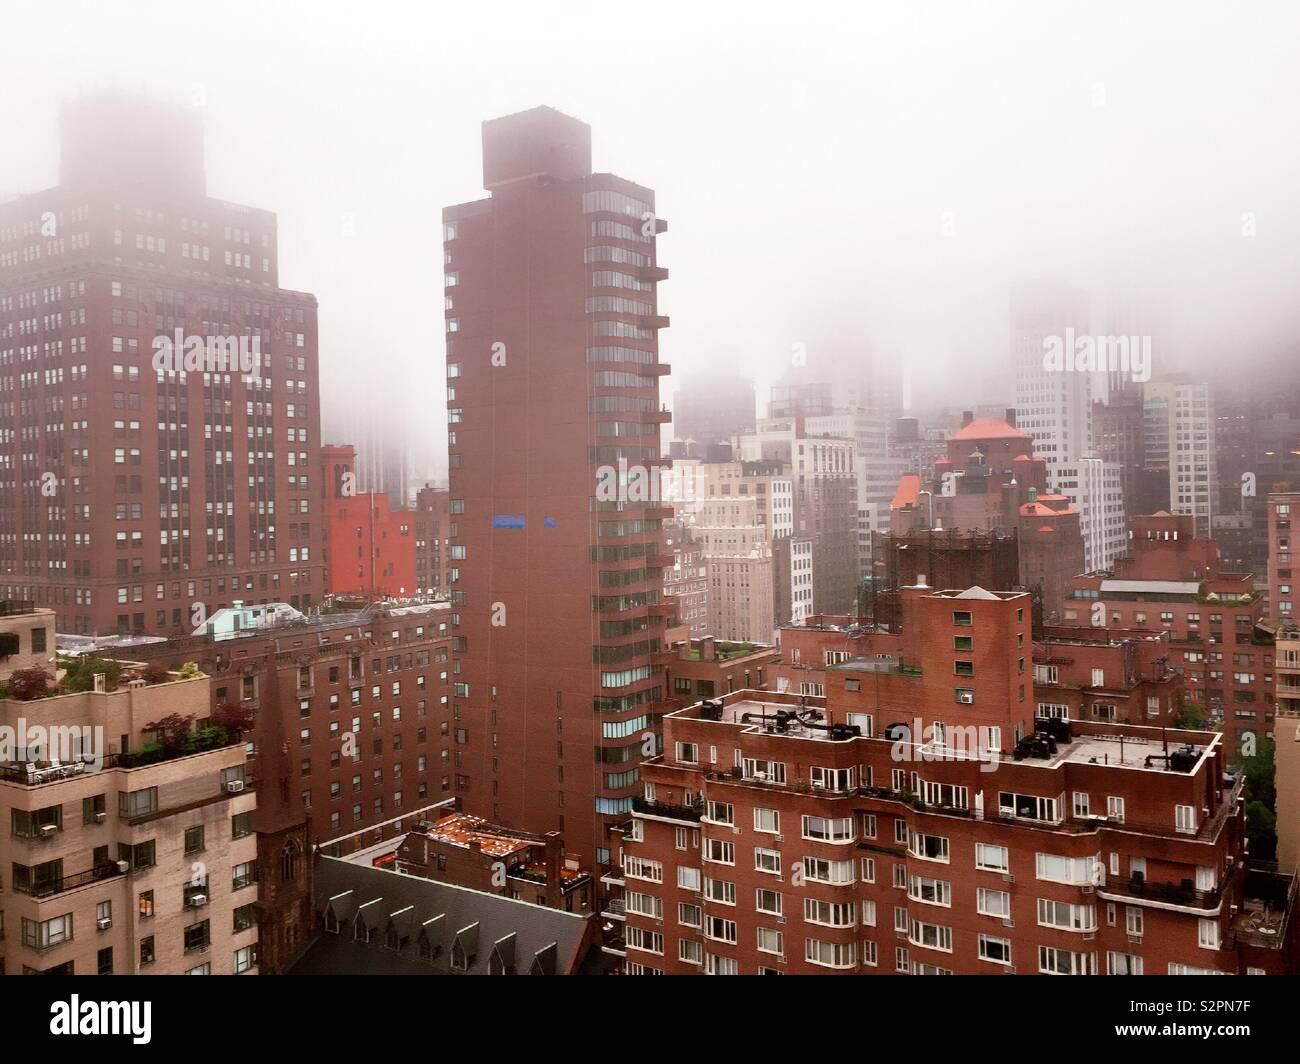 Frog obscure is the view of skyscrapers and other buildings in midtown Manhattan, NYC, USA - Stock Image